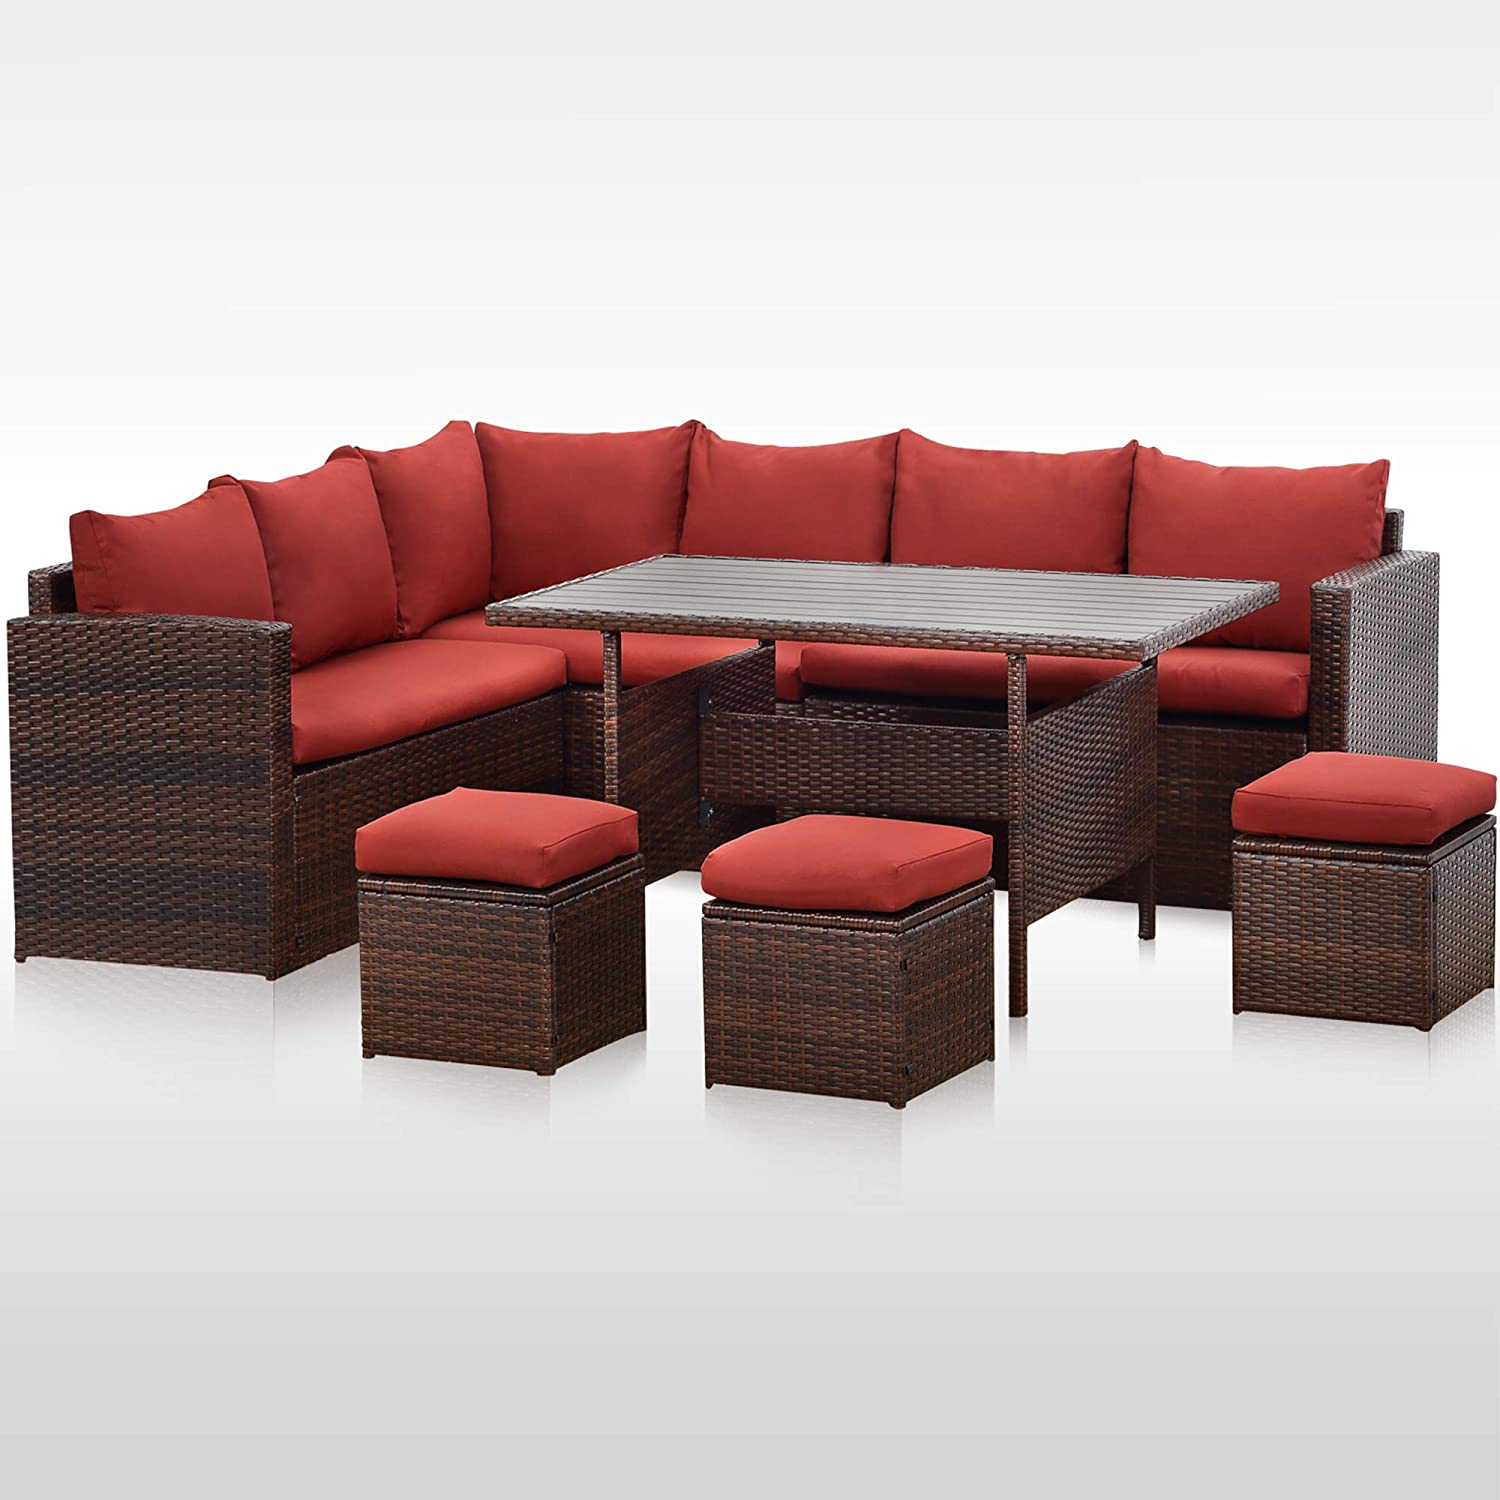 Wisteria Lane Patio Furniture Set, Outdoor 7 Pieces Sectional Sofa Couch, All-Weather Upgraded Wicker Dining Table and Chair with Ottoman, Improved Wine Red Cushion